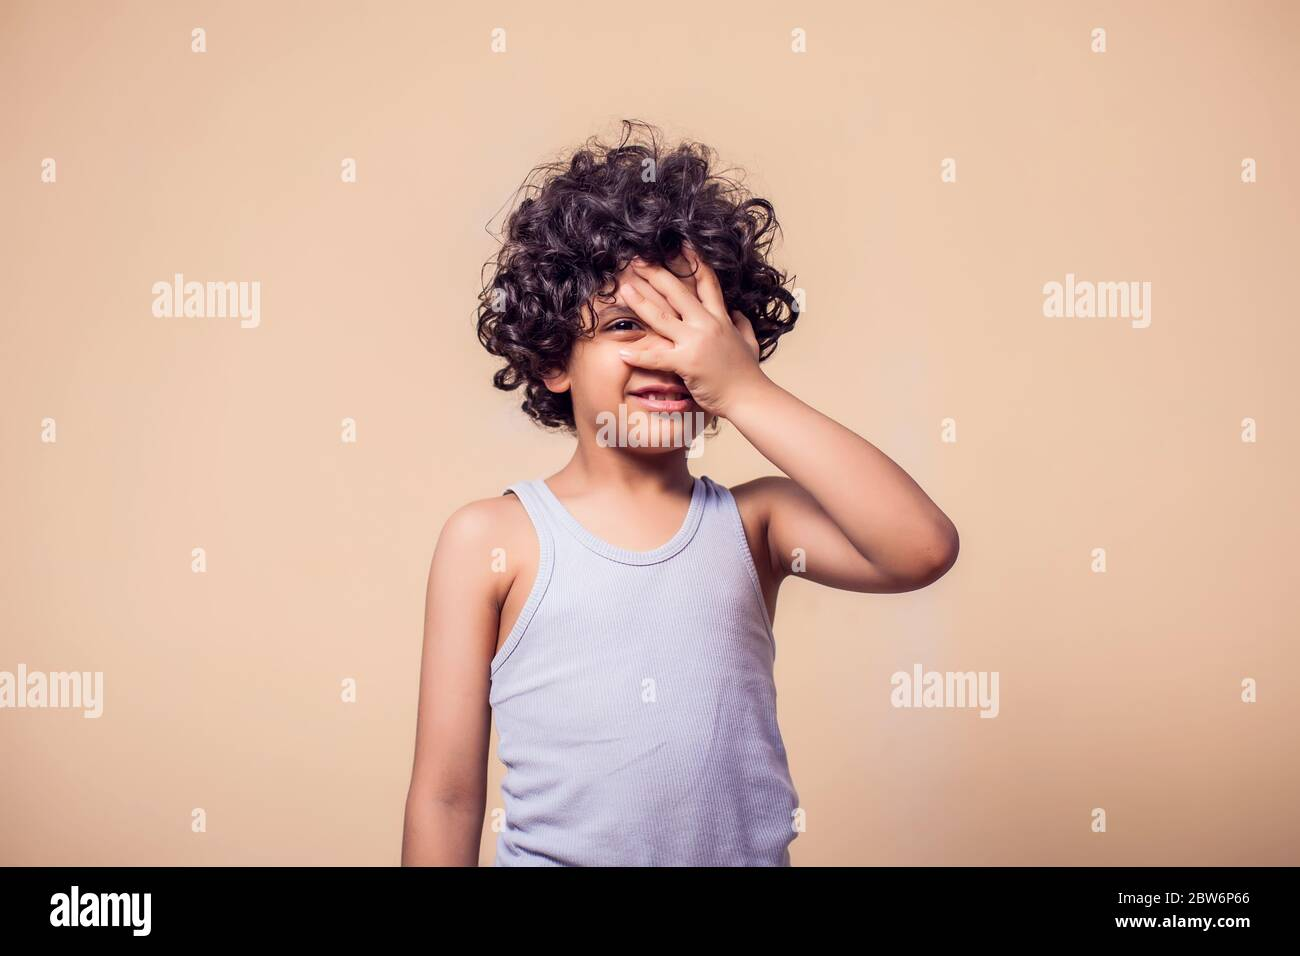 A Portrait Of Sad Kid Boy With Curly Hair Children And Emotions Concept Stock Photo Alamy